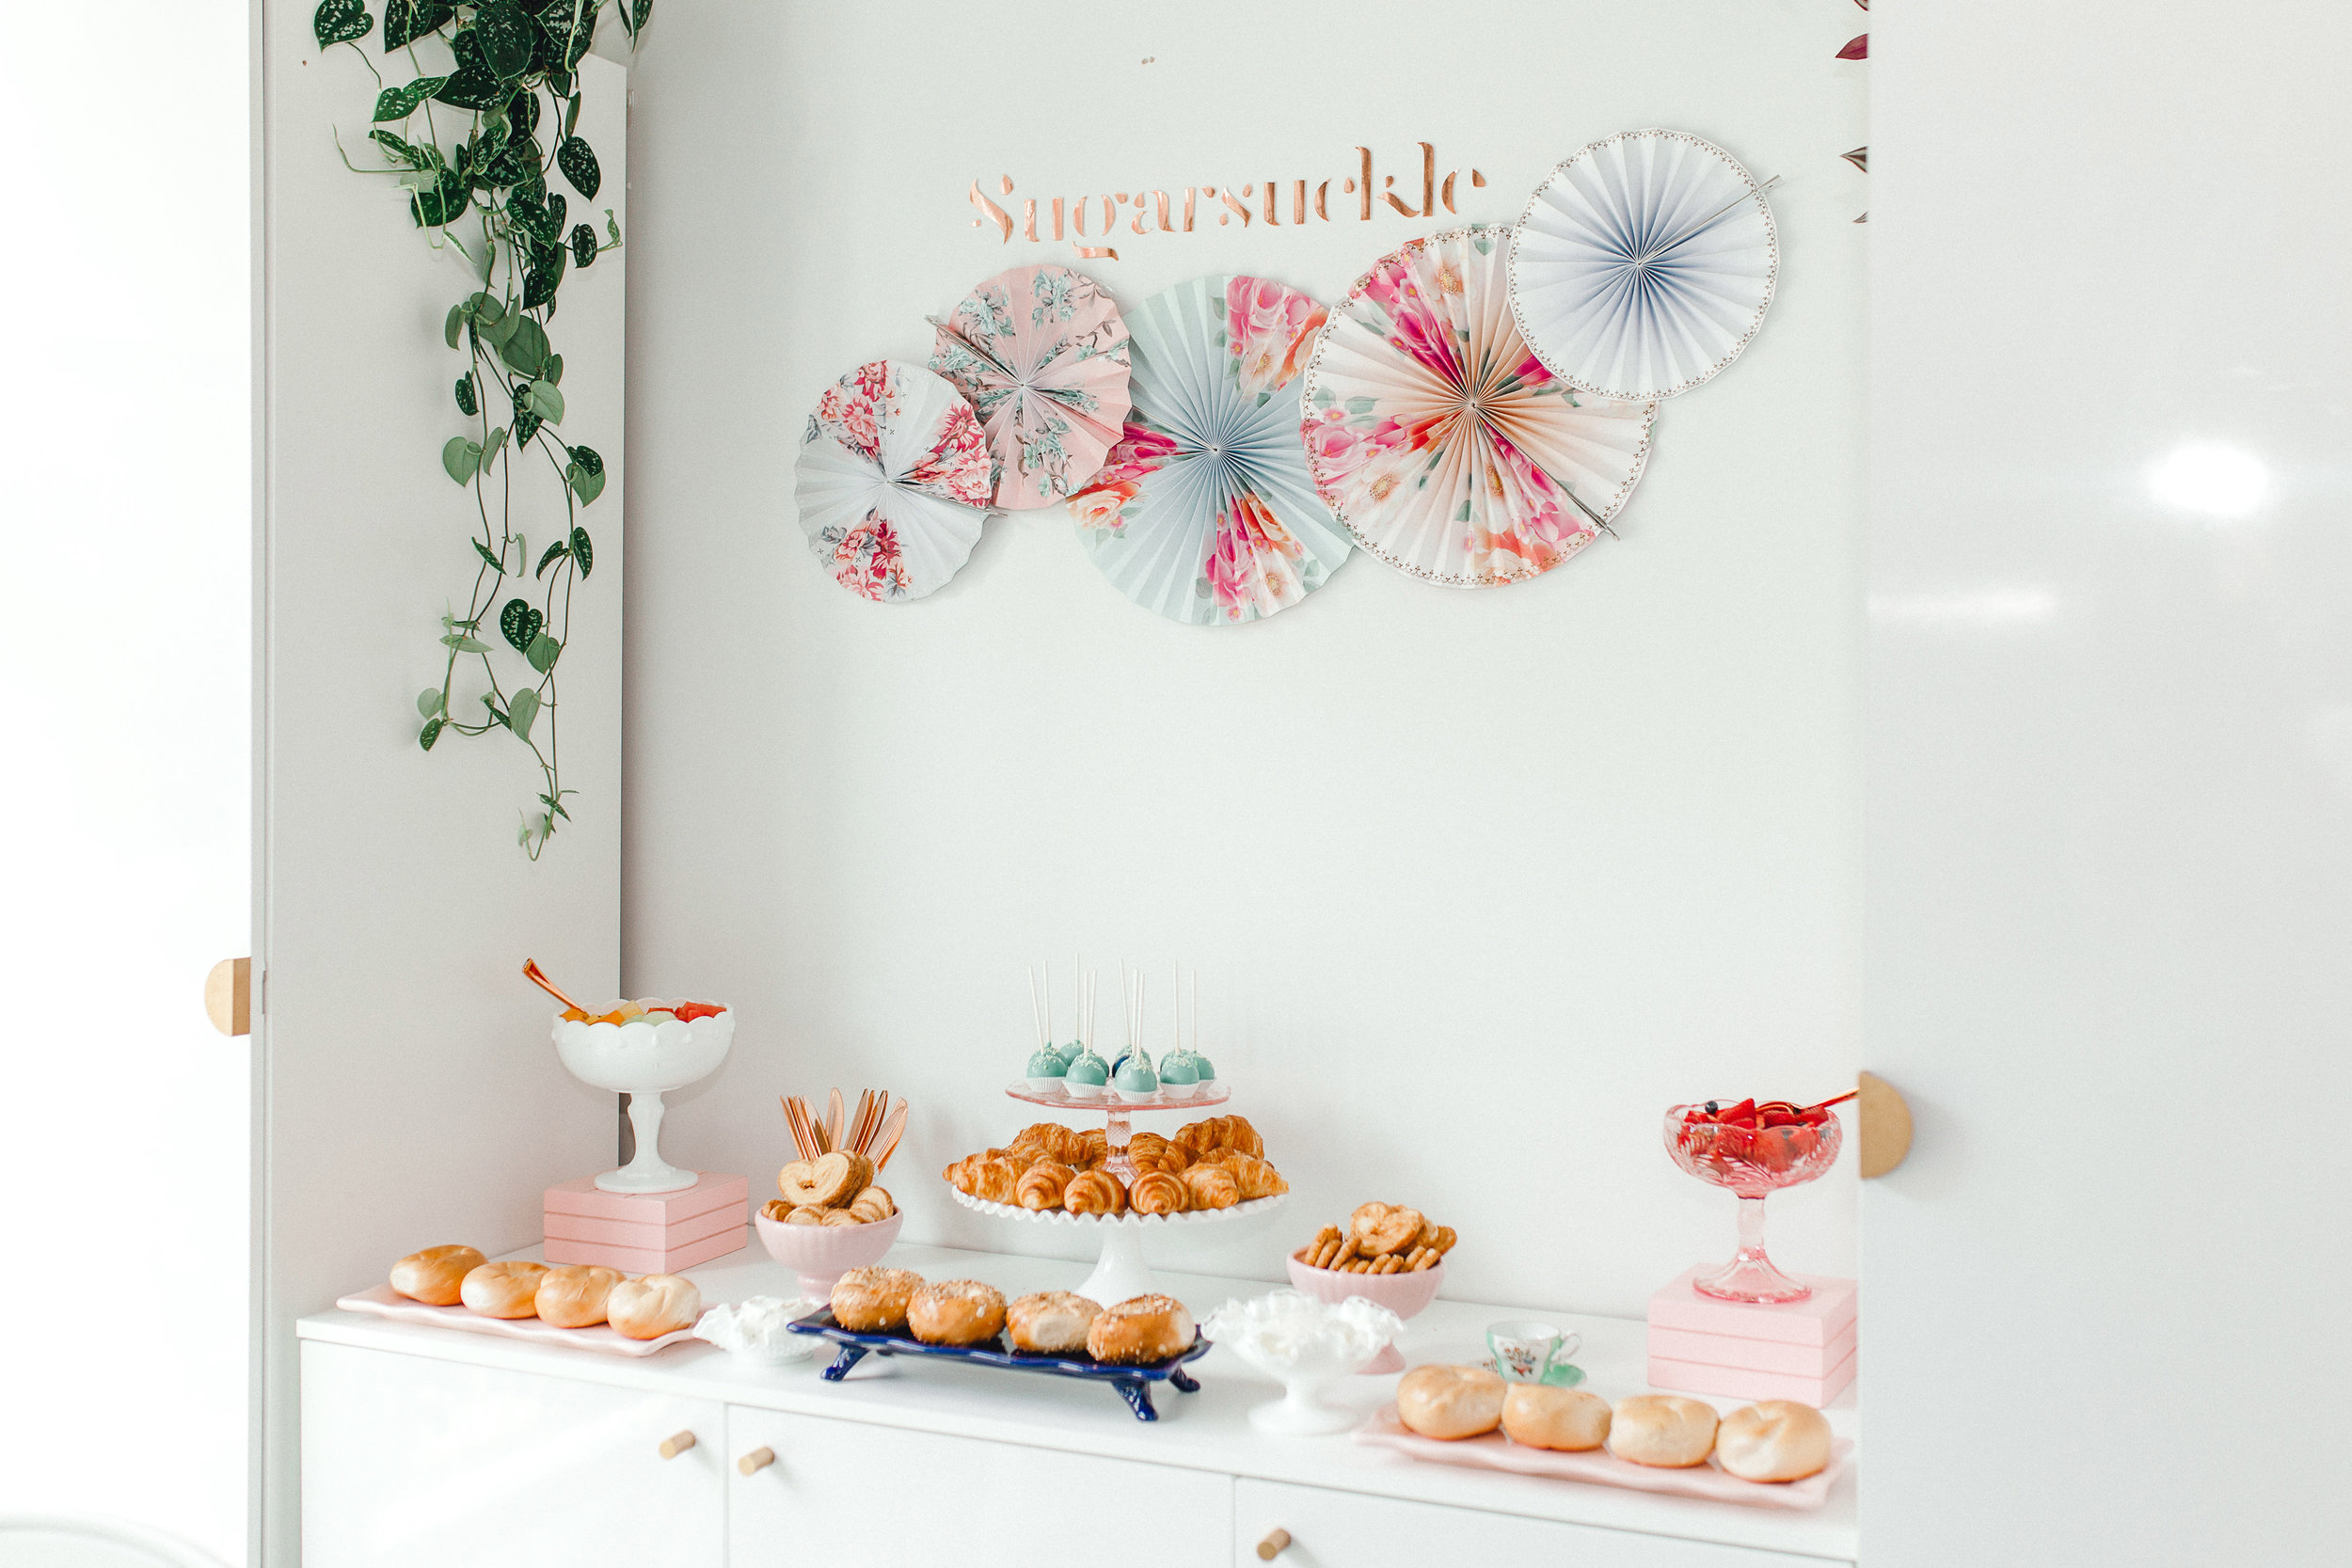 Bagels by JP Bagels Express  Styling by Popseri  Party rentals by Tie a Bow